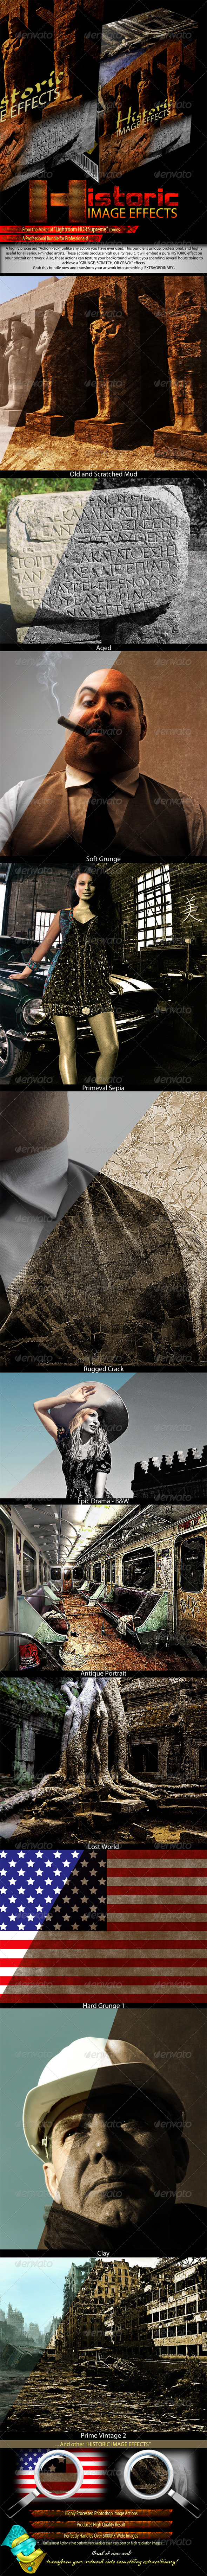 GraphicRiver Historic Image Effects 721951